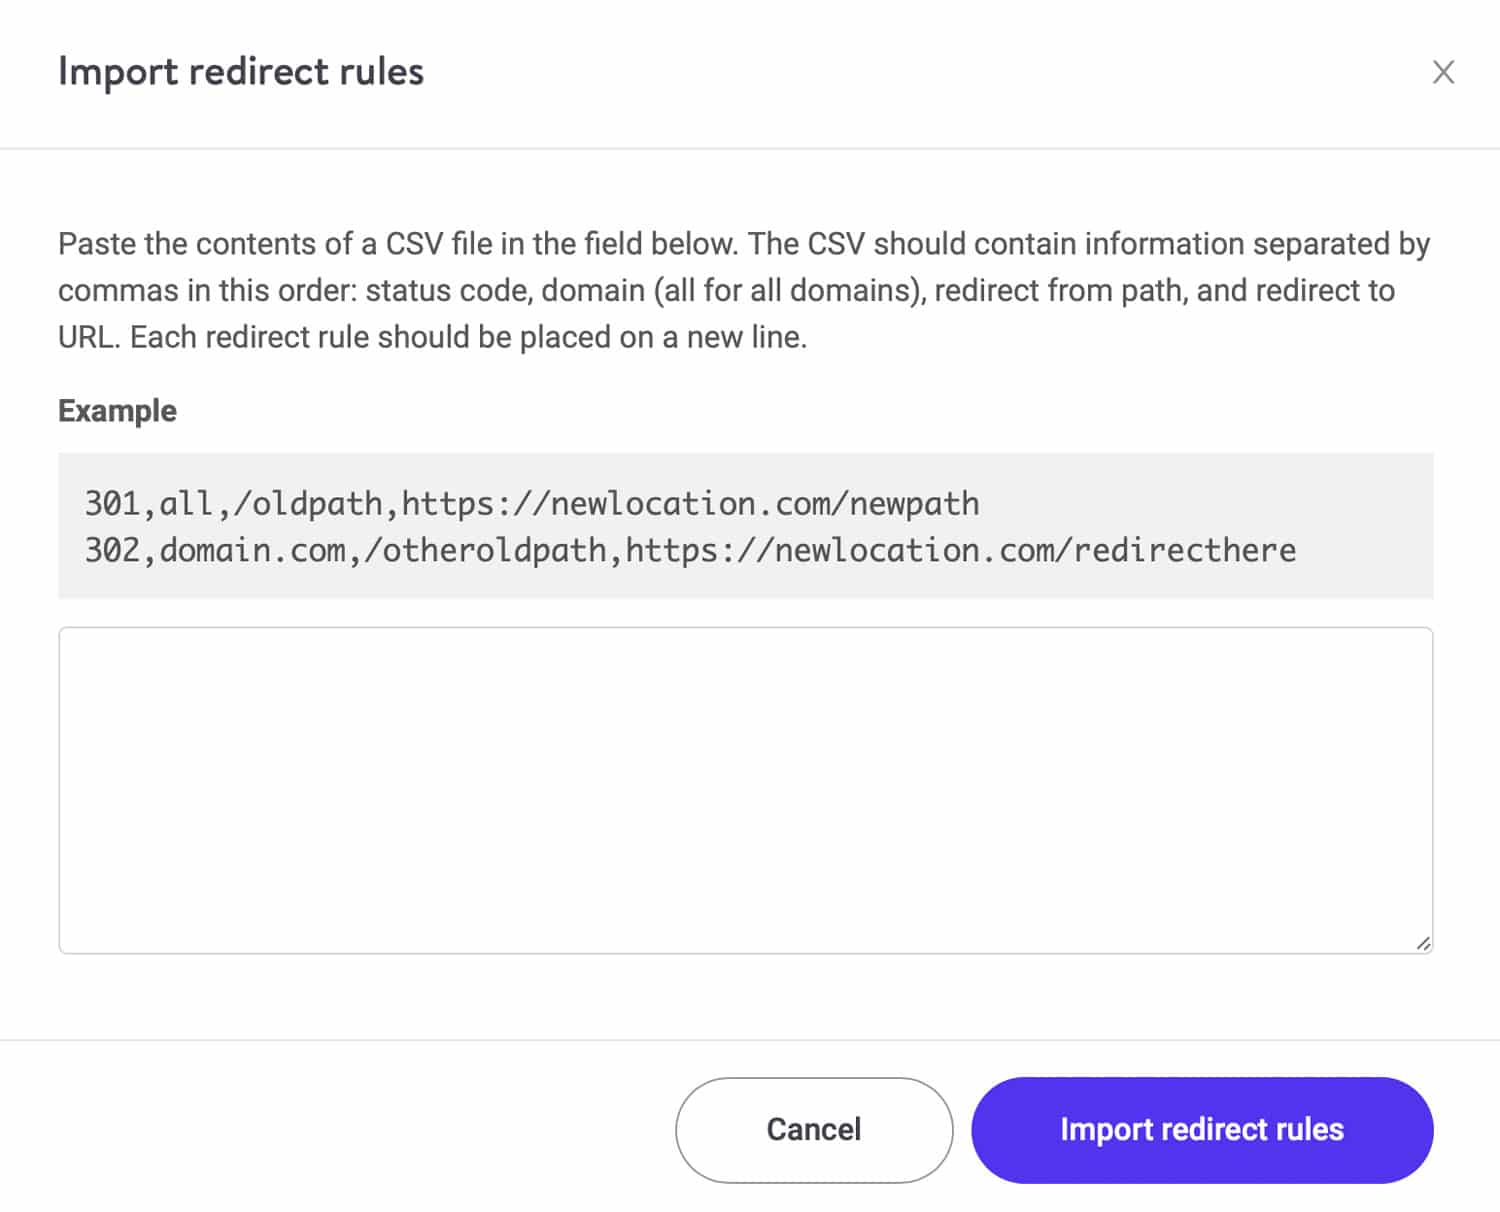 Paste and import redirect rules in bulk.